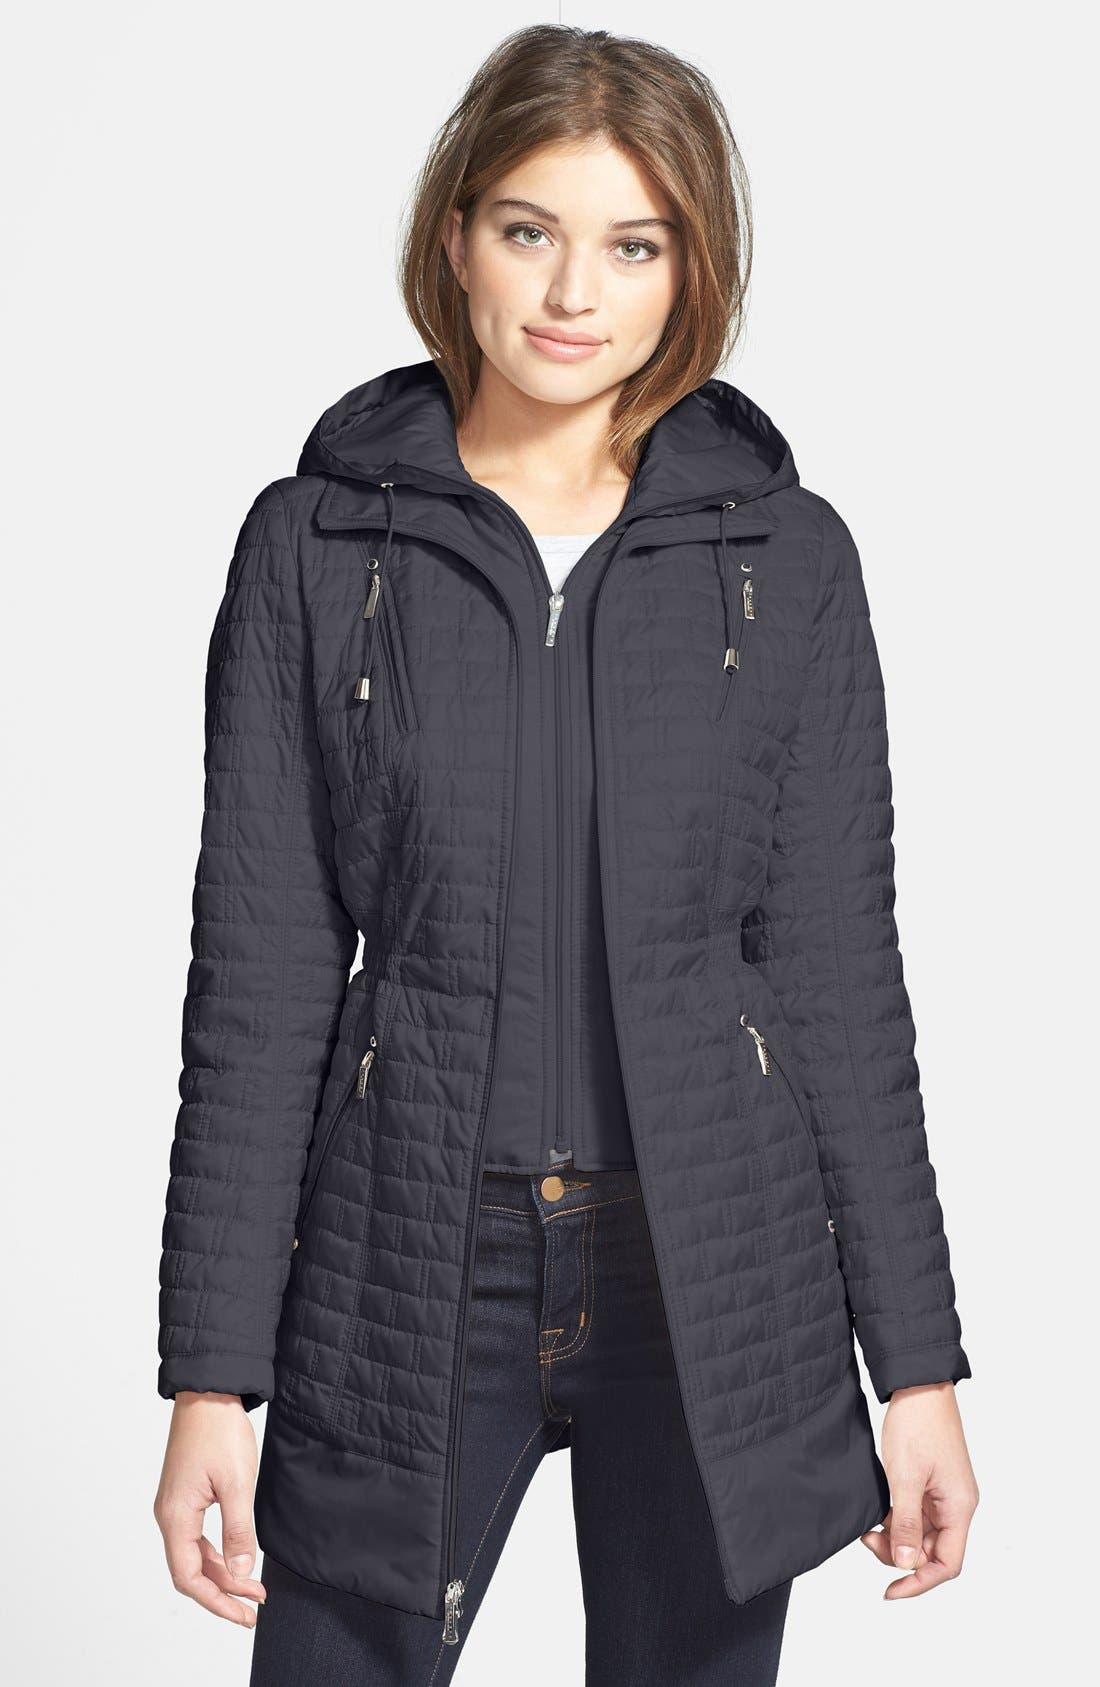 Main Image - Laundry by Shelli Segal Quilted Anorak with Detachable Hooded Vest Insert